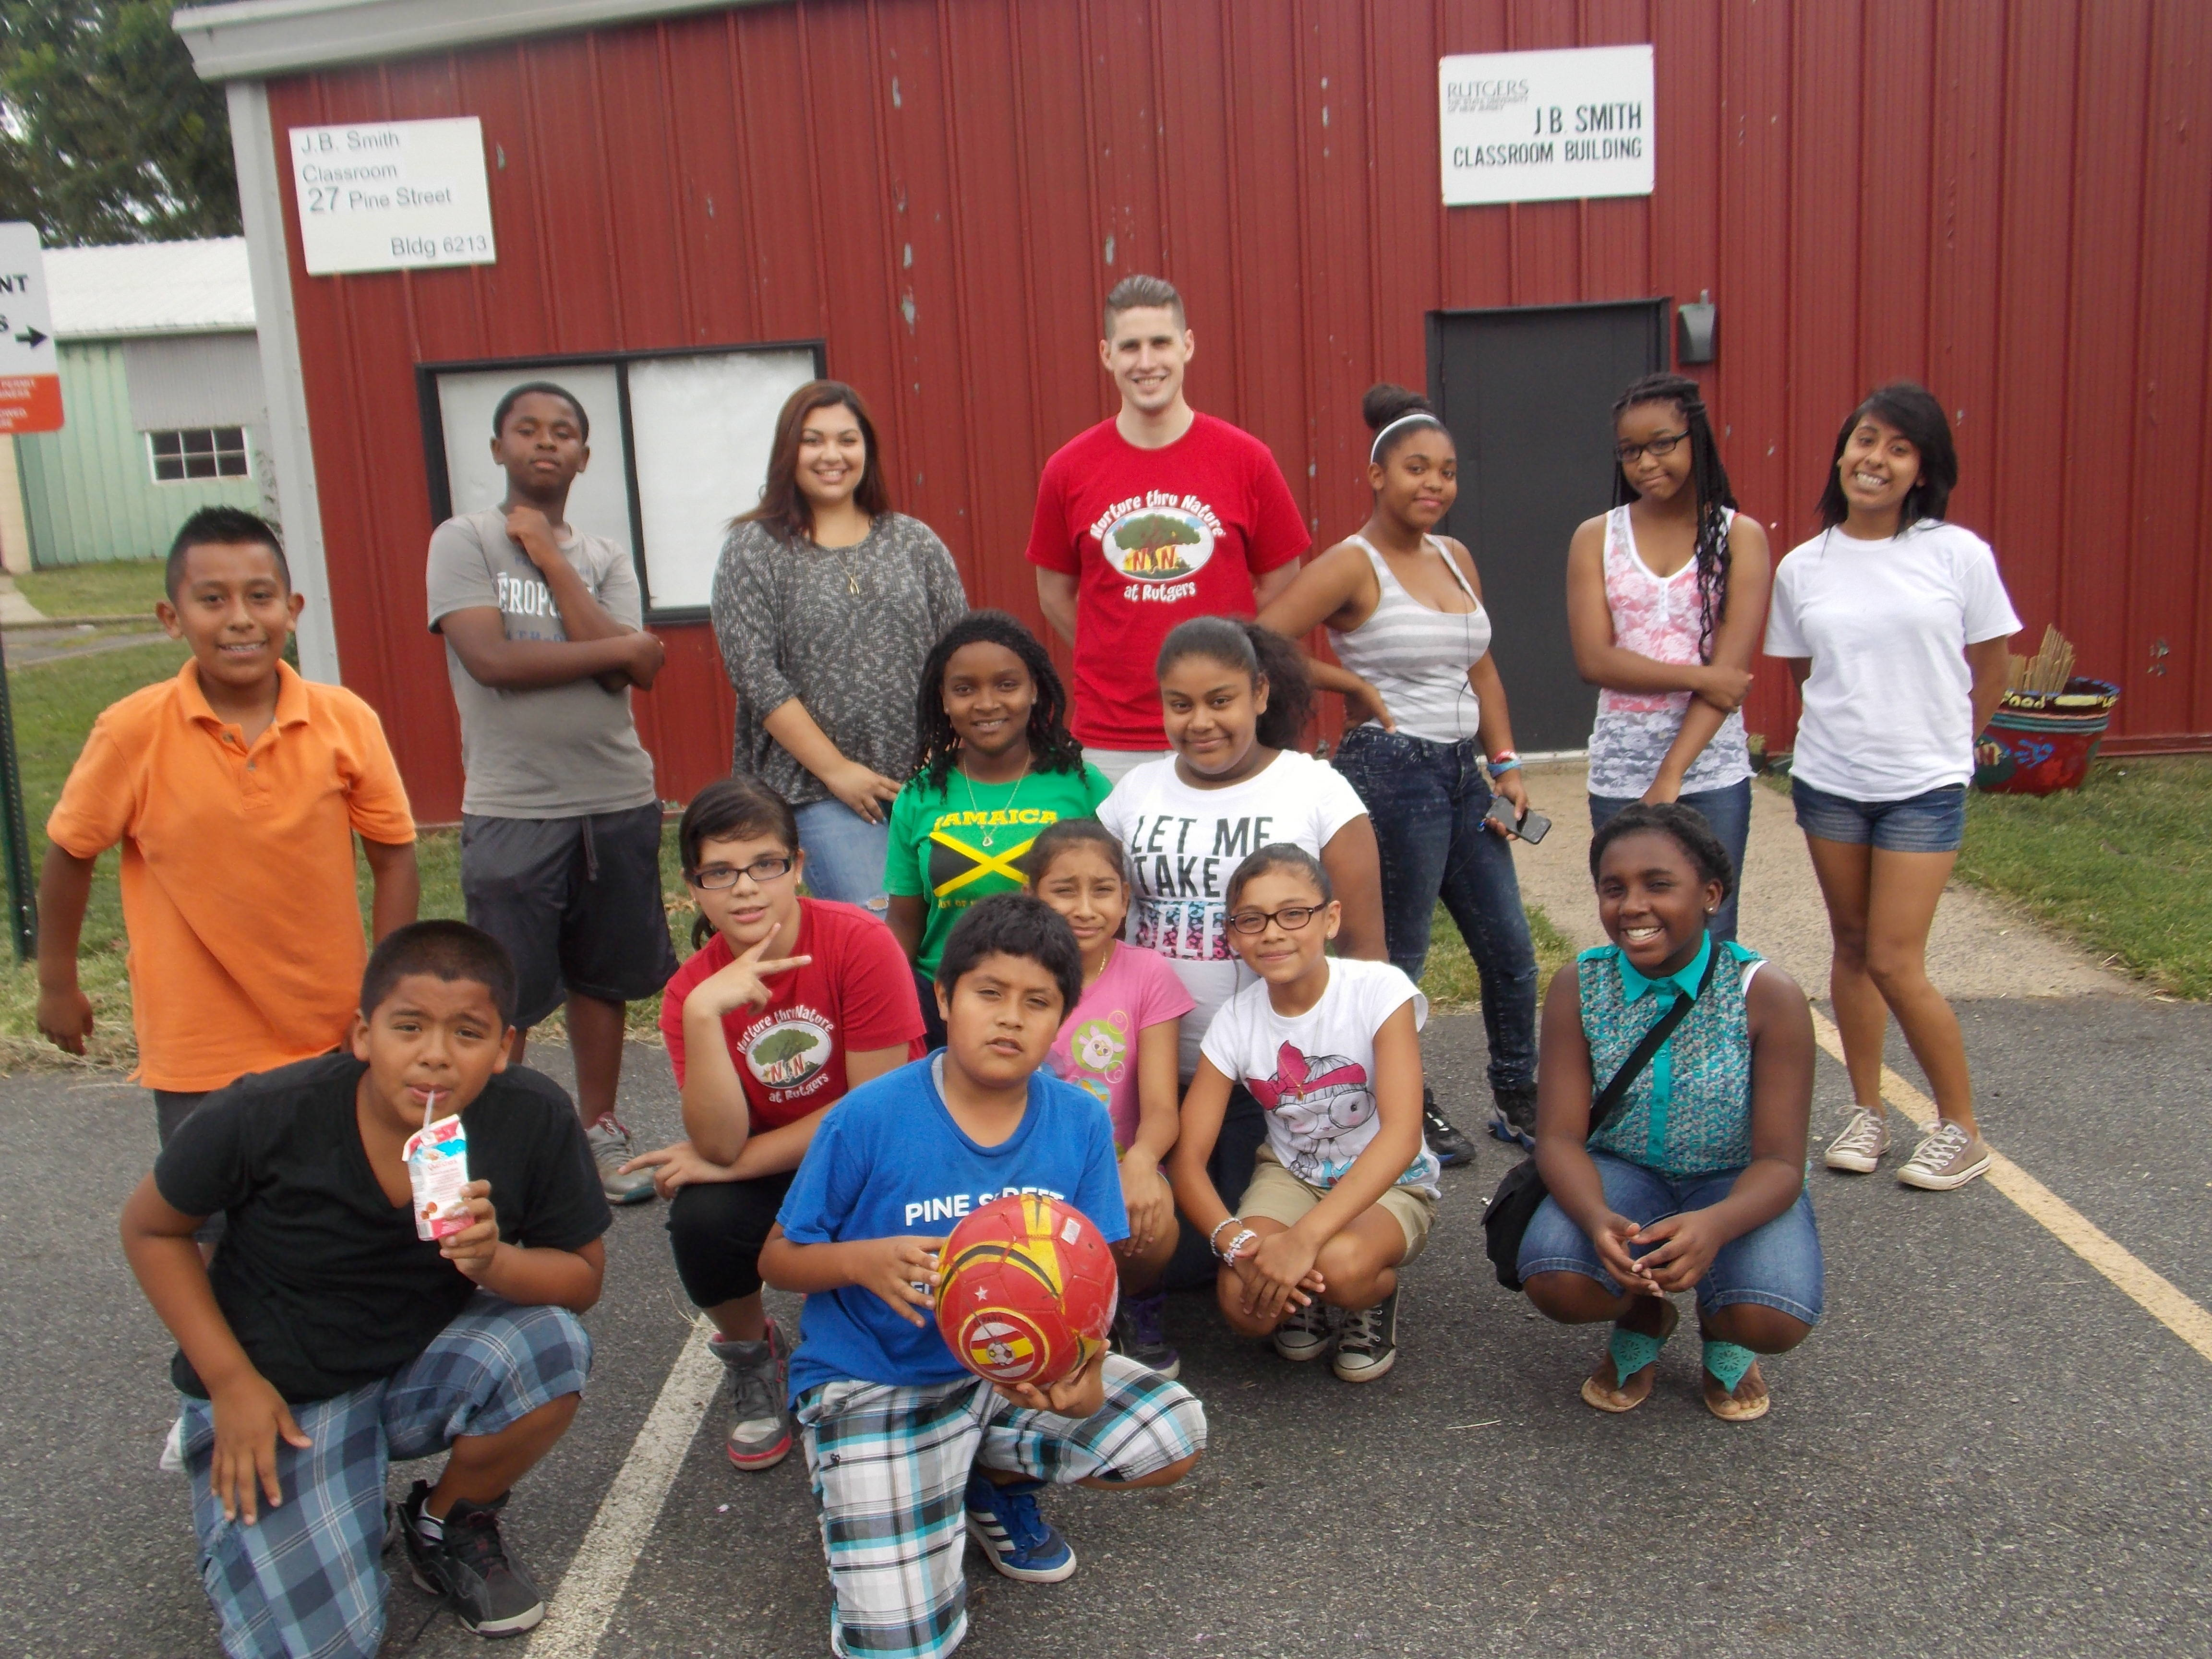 5656c916782d8d2ca407_Current-6th-Graders-orginally-from-Paul-Robeson.jpg